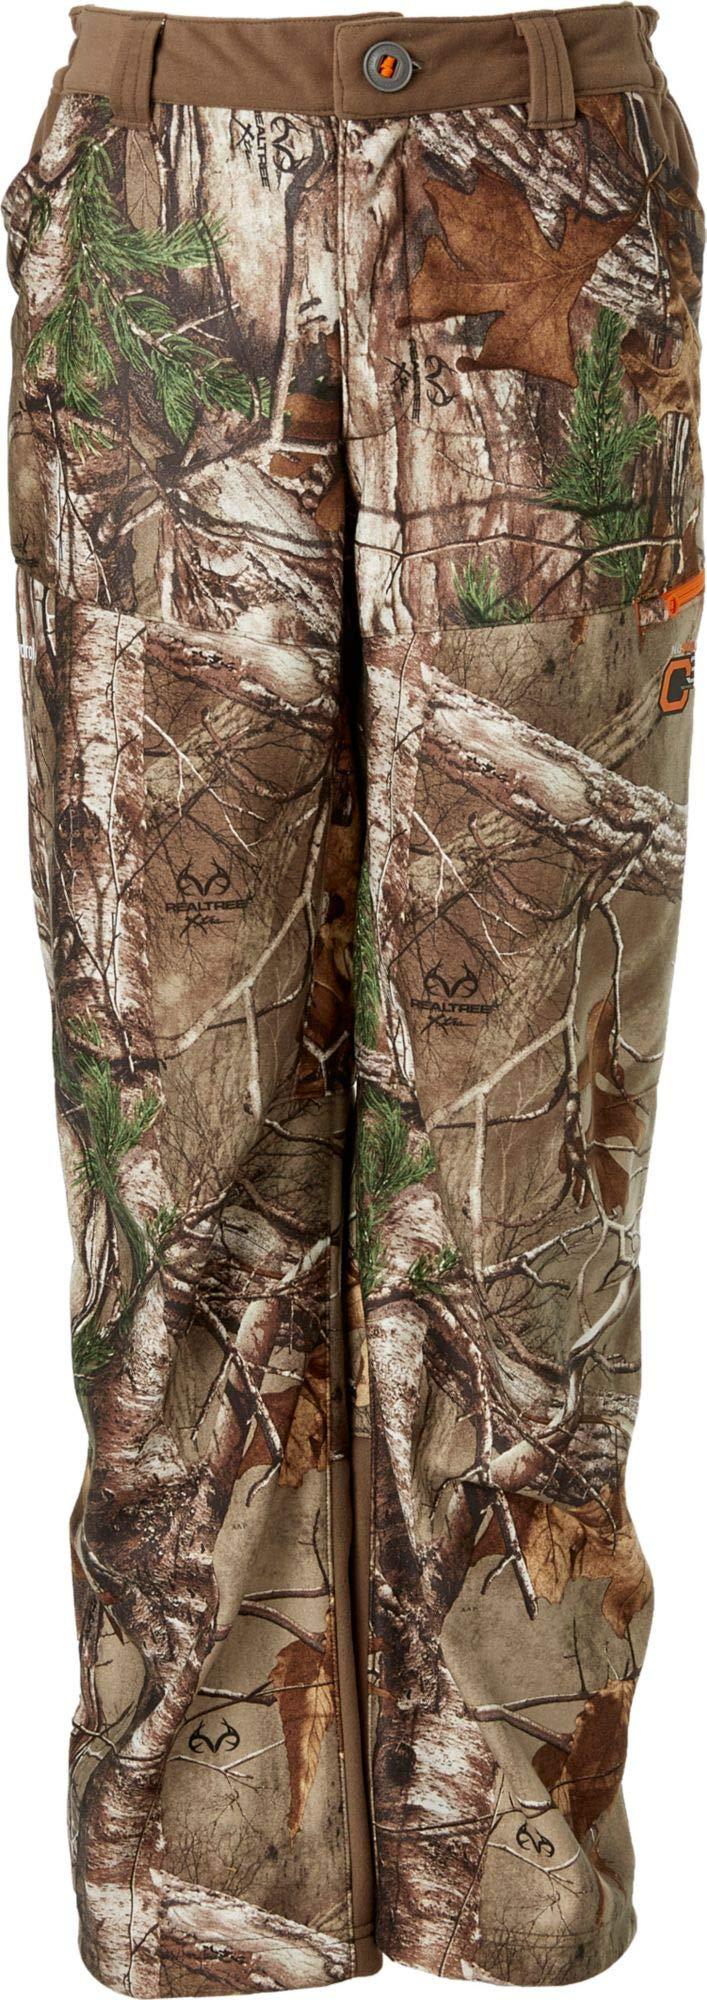 Field & Stream Youth Every Hunt Softshell Hunting Pants,(Realtree Xtra,X-Large) by Field & Stream